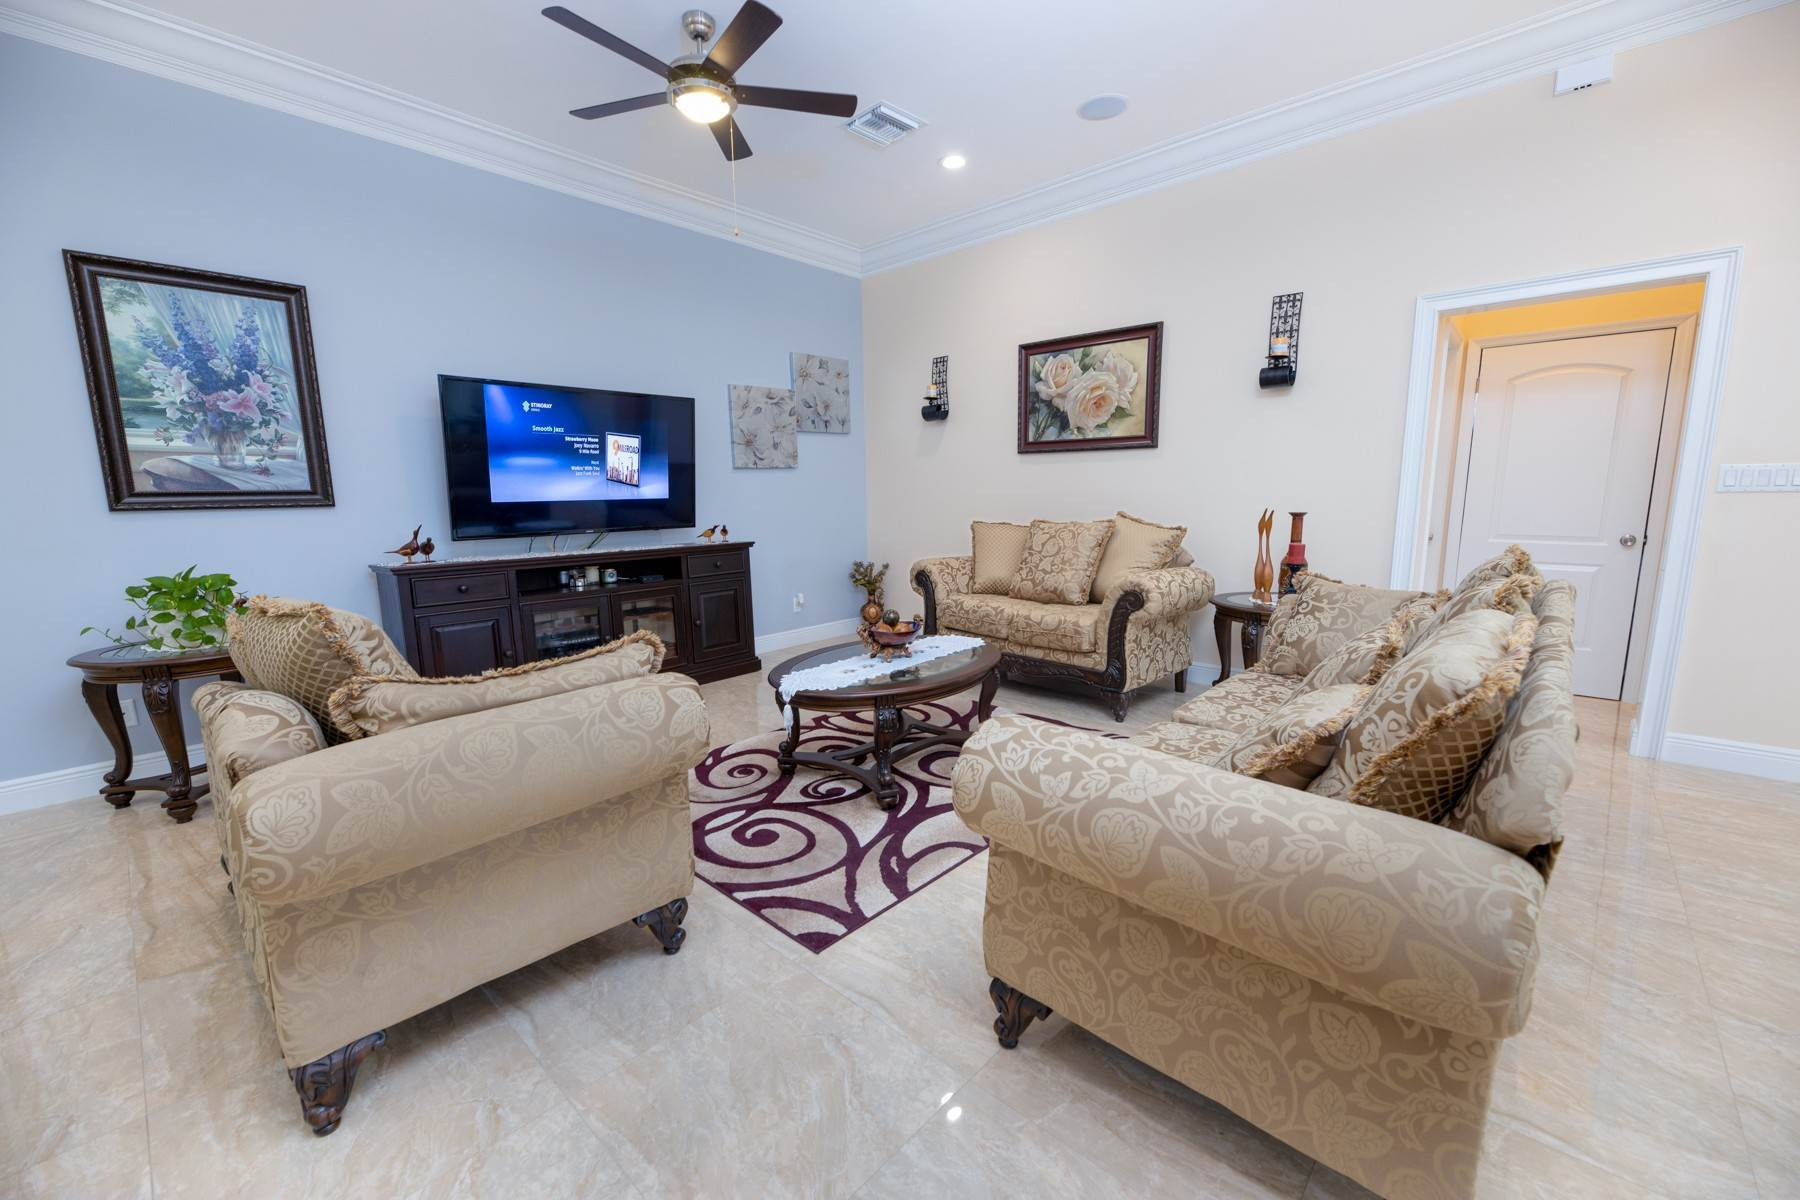 2. Single Family Homes for Sale at Villa Greenway House for Sale - MLS 41427 Charlotteville, Nassau And Paradise Island, Bahamas